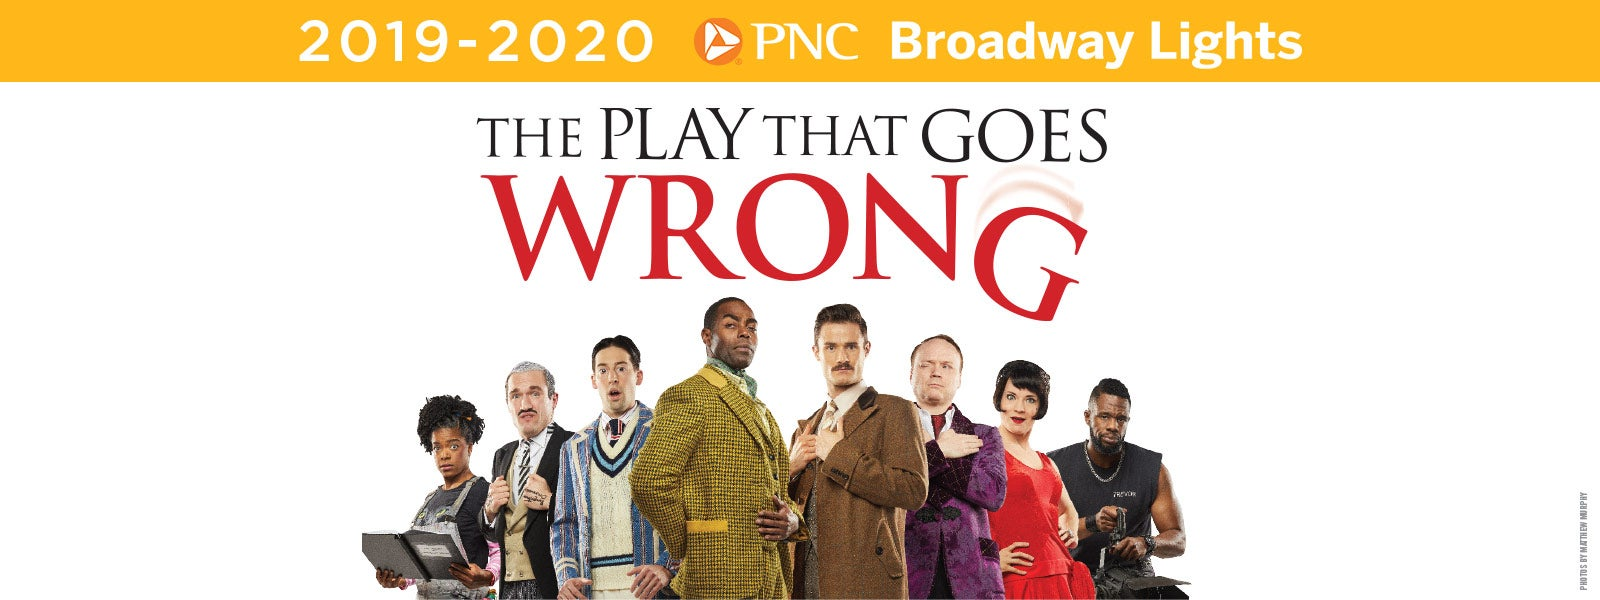 The-Play-That-Goes-Wrong_1600x600_BRANDED.jpg